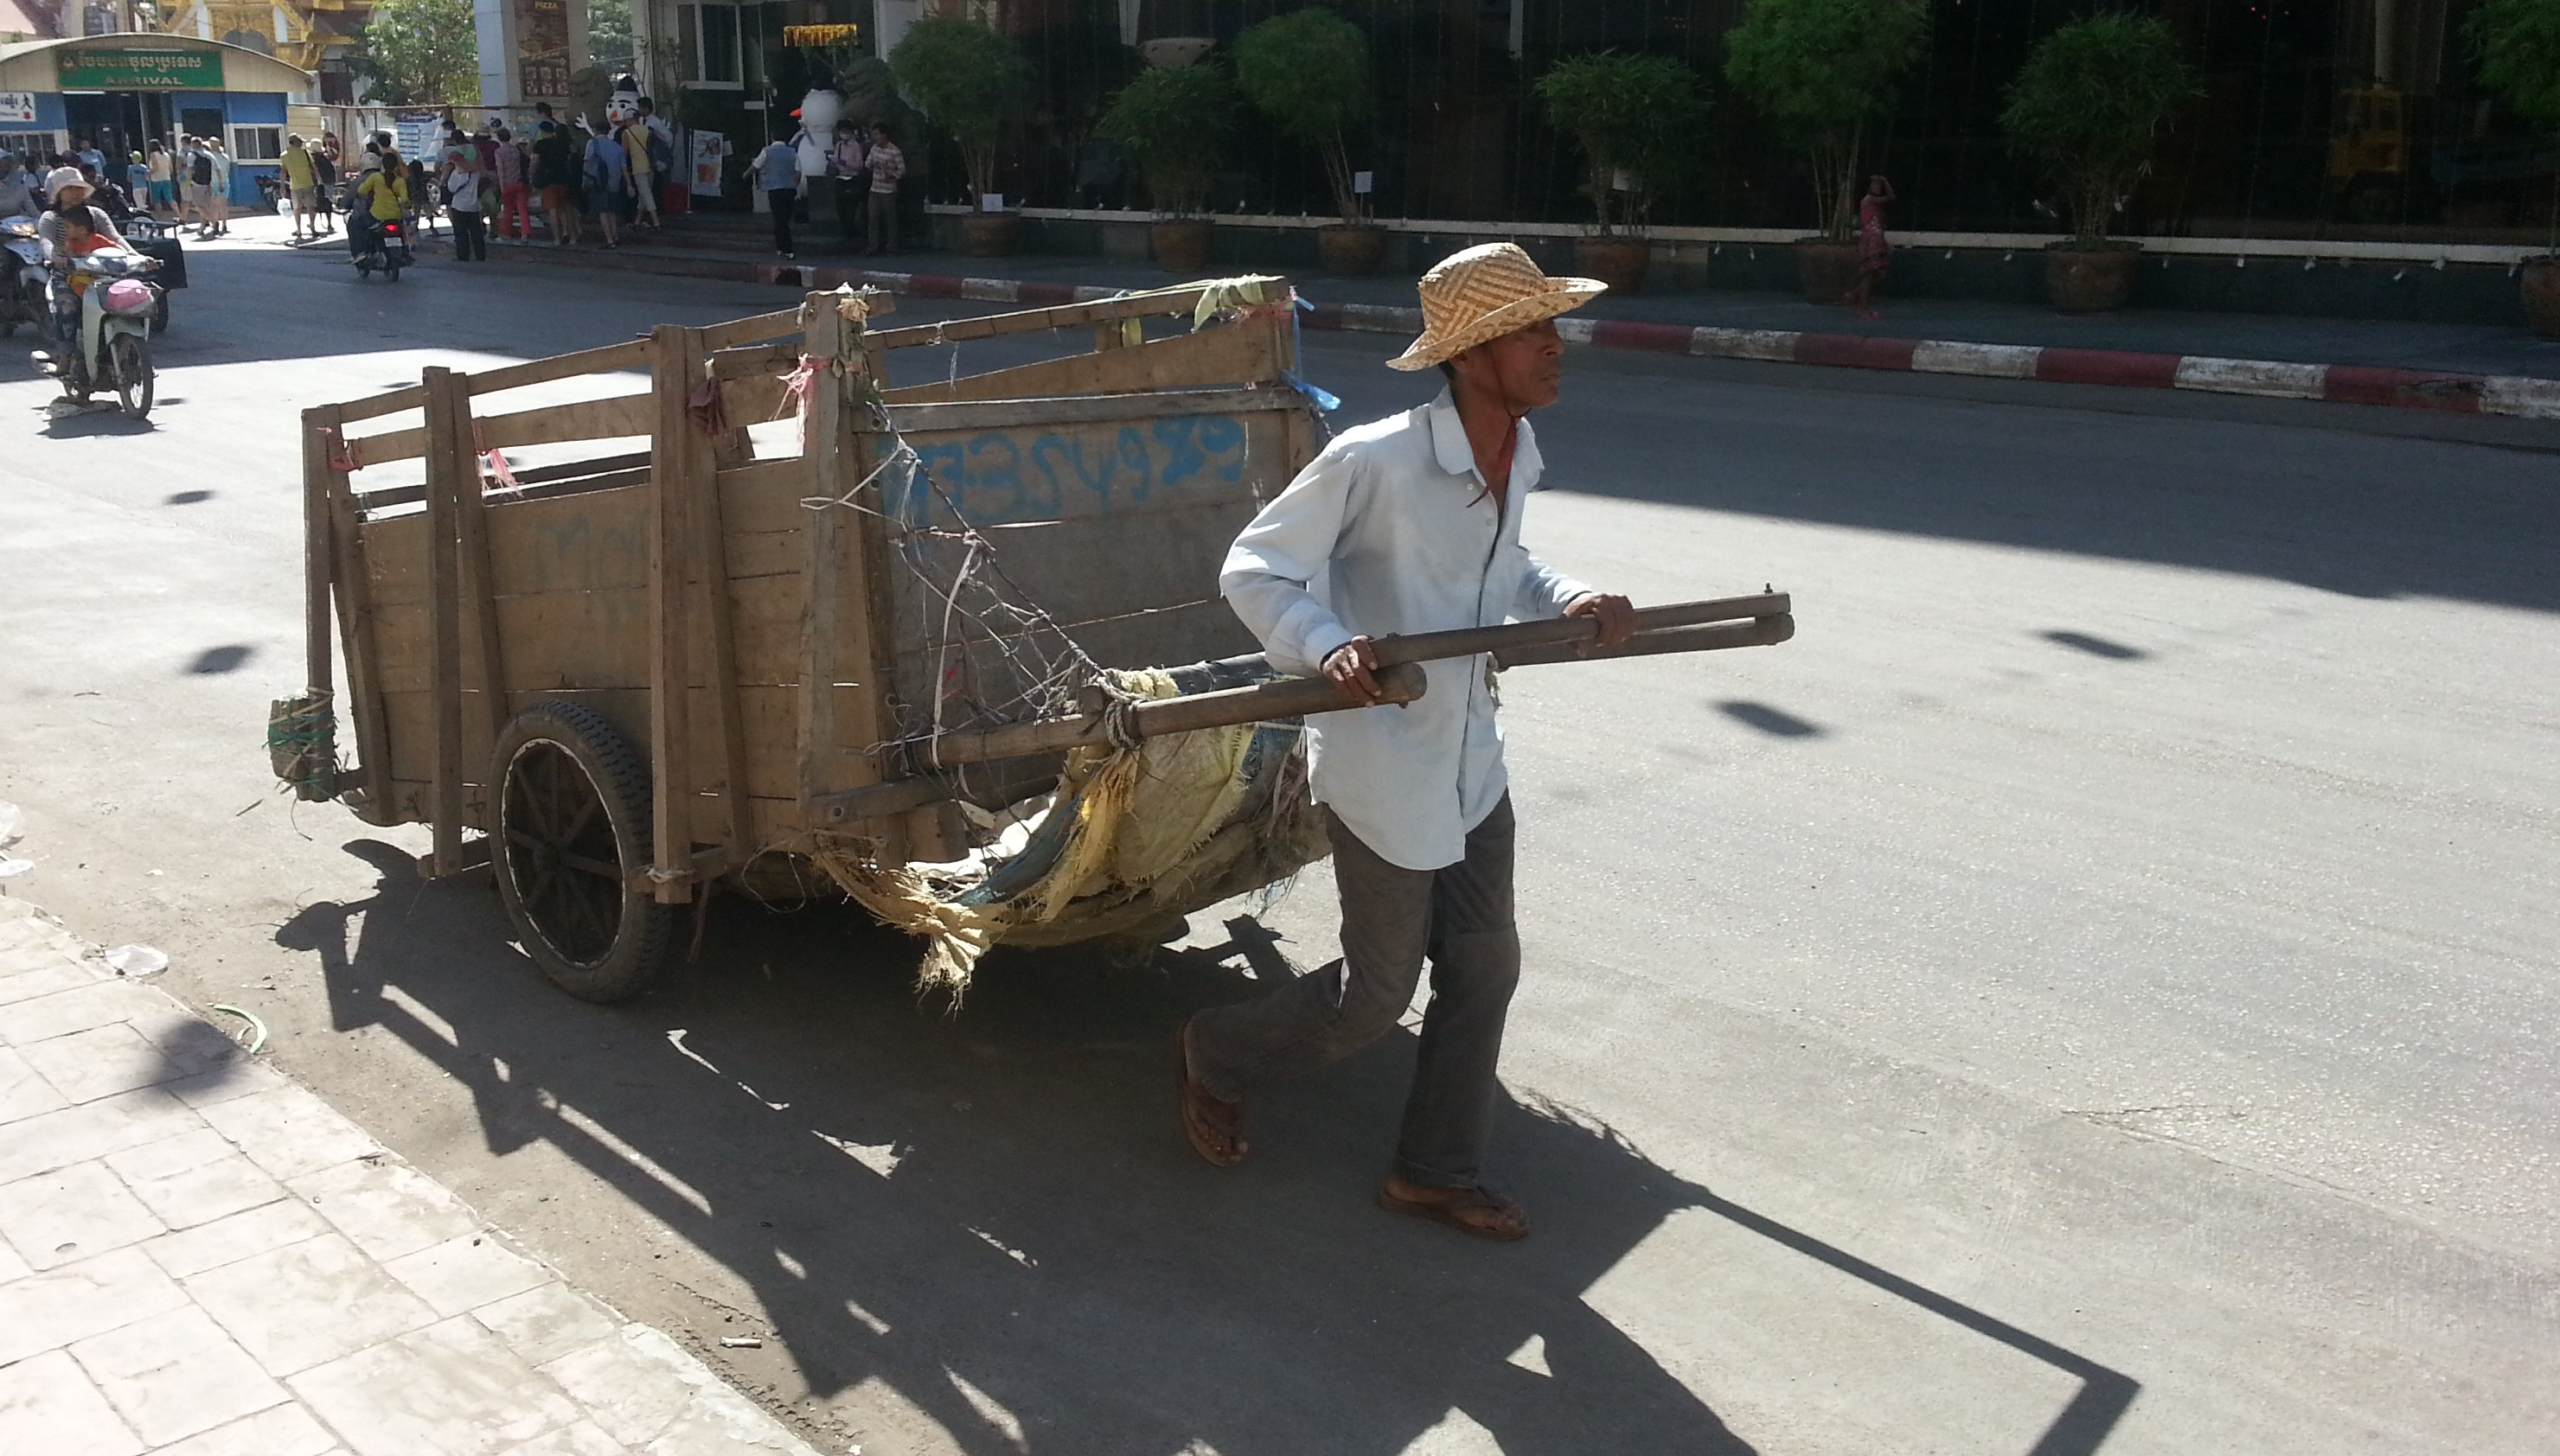 Cambodia man pulling rubbish cart on hot street